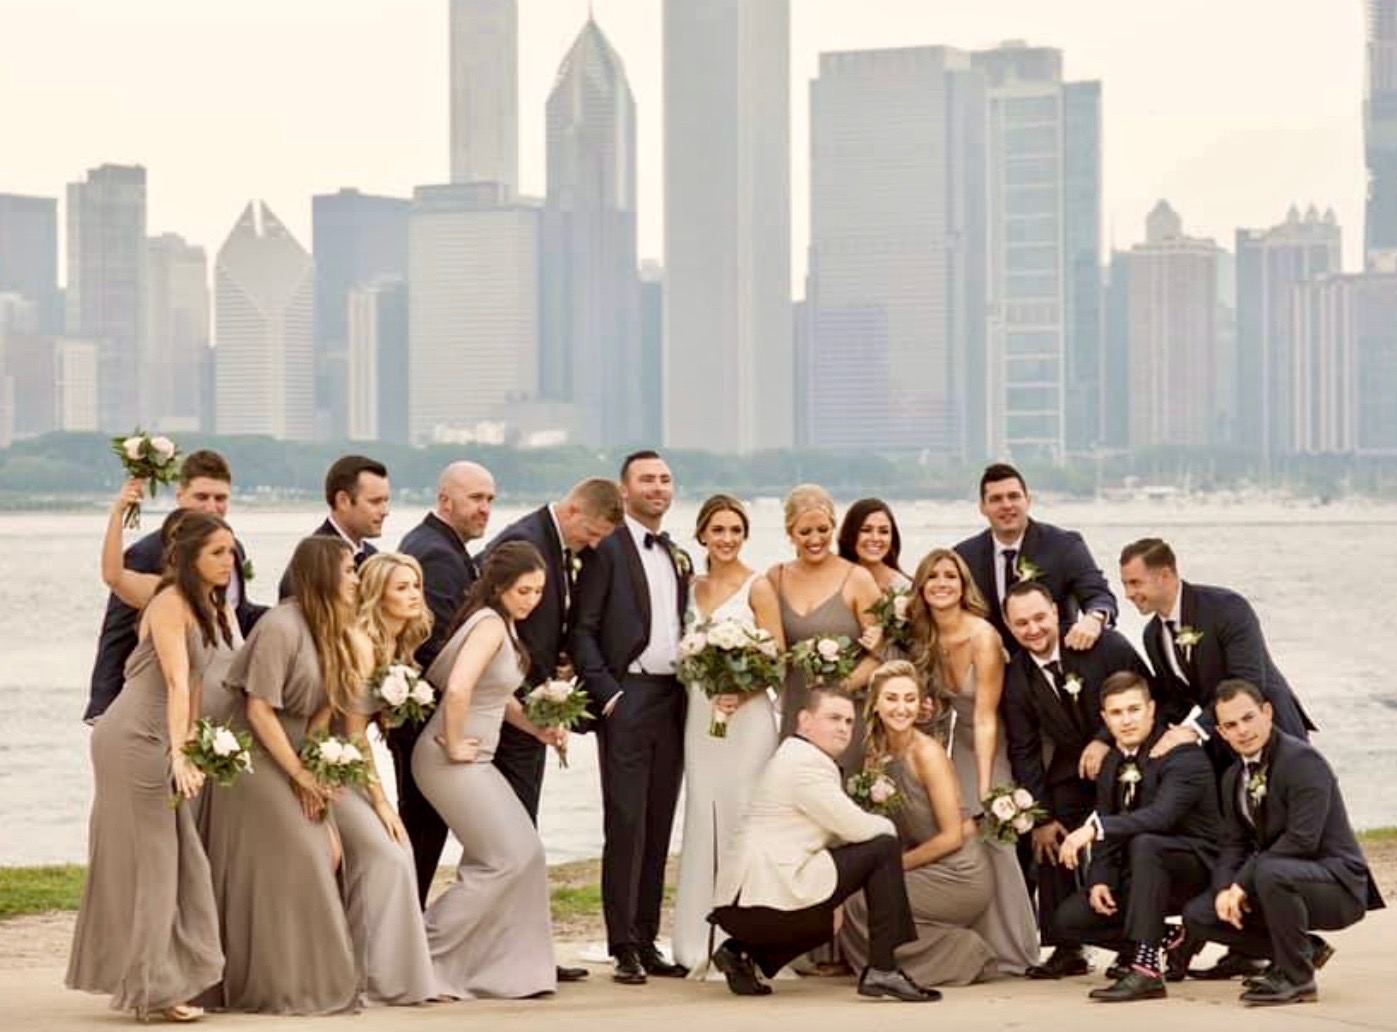 Wedding party with the Chicago skyline in the background